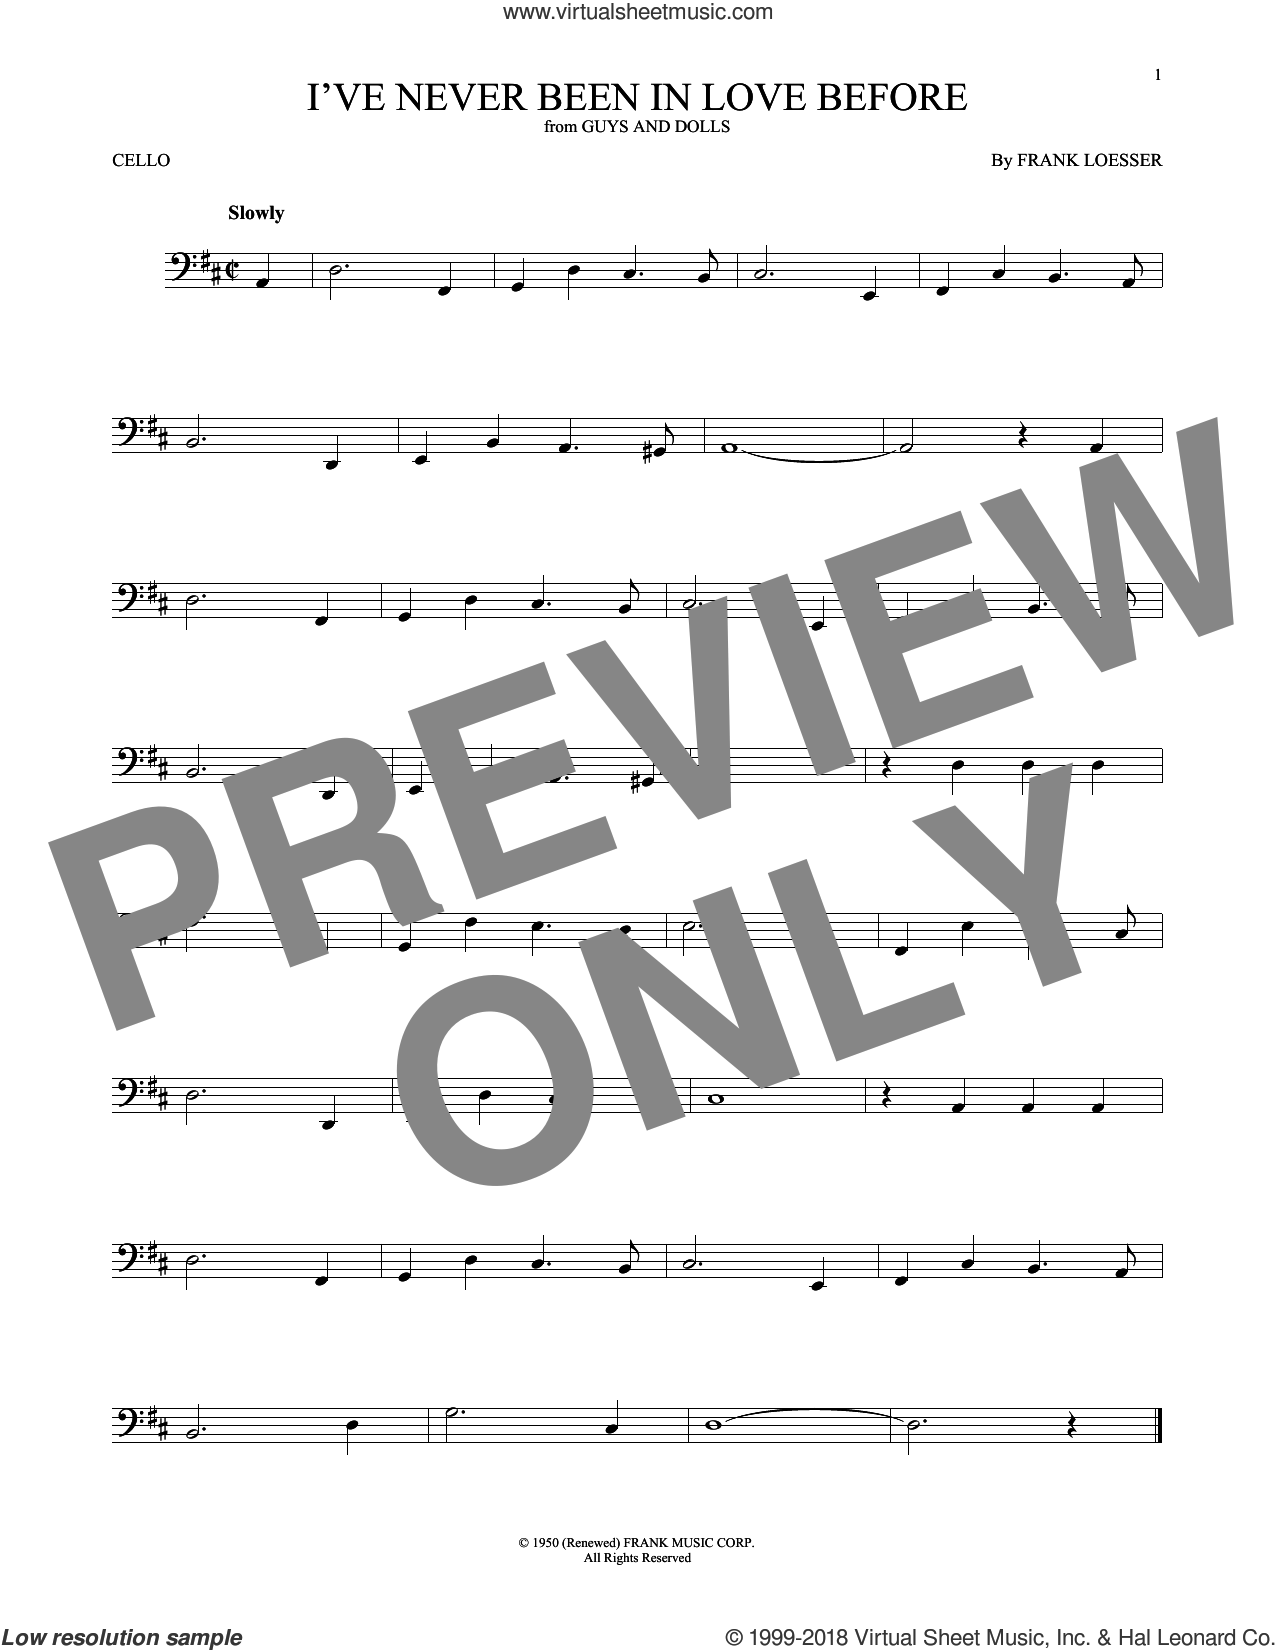 I've Never Been In Love Before sheet music for cello solo by Frank Loesser, Billy Eckstine, Chet Baker and Stan Kenton, intermediate skill level